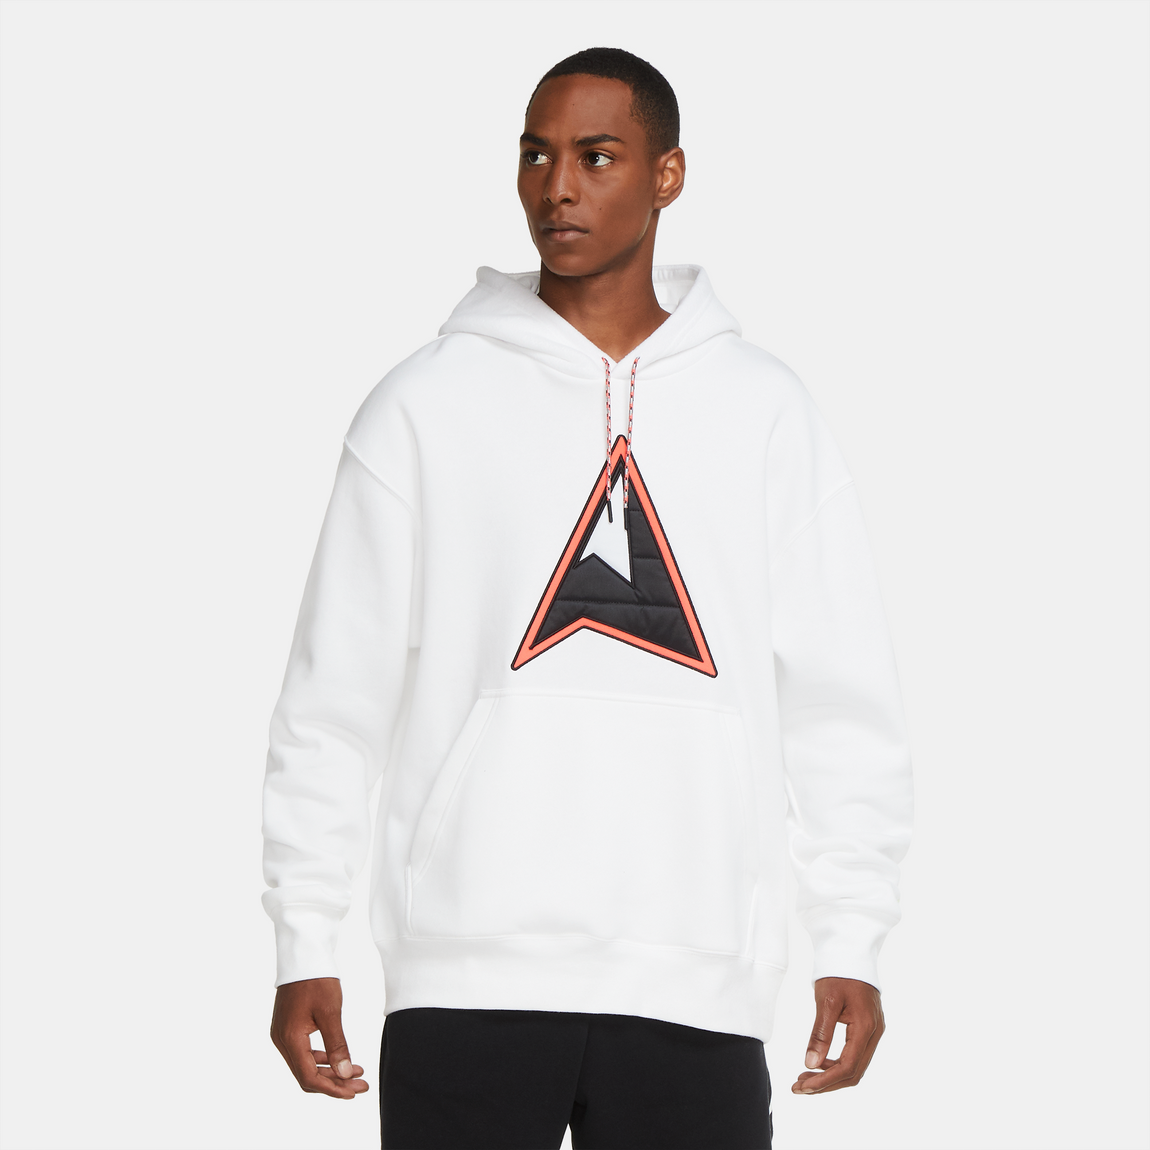 Jordan Winter Utility Hoodie (White/Black-Infrared) - Jordan Winter Utility Hoodie (White/Black-Infrared) -